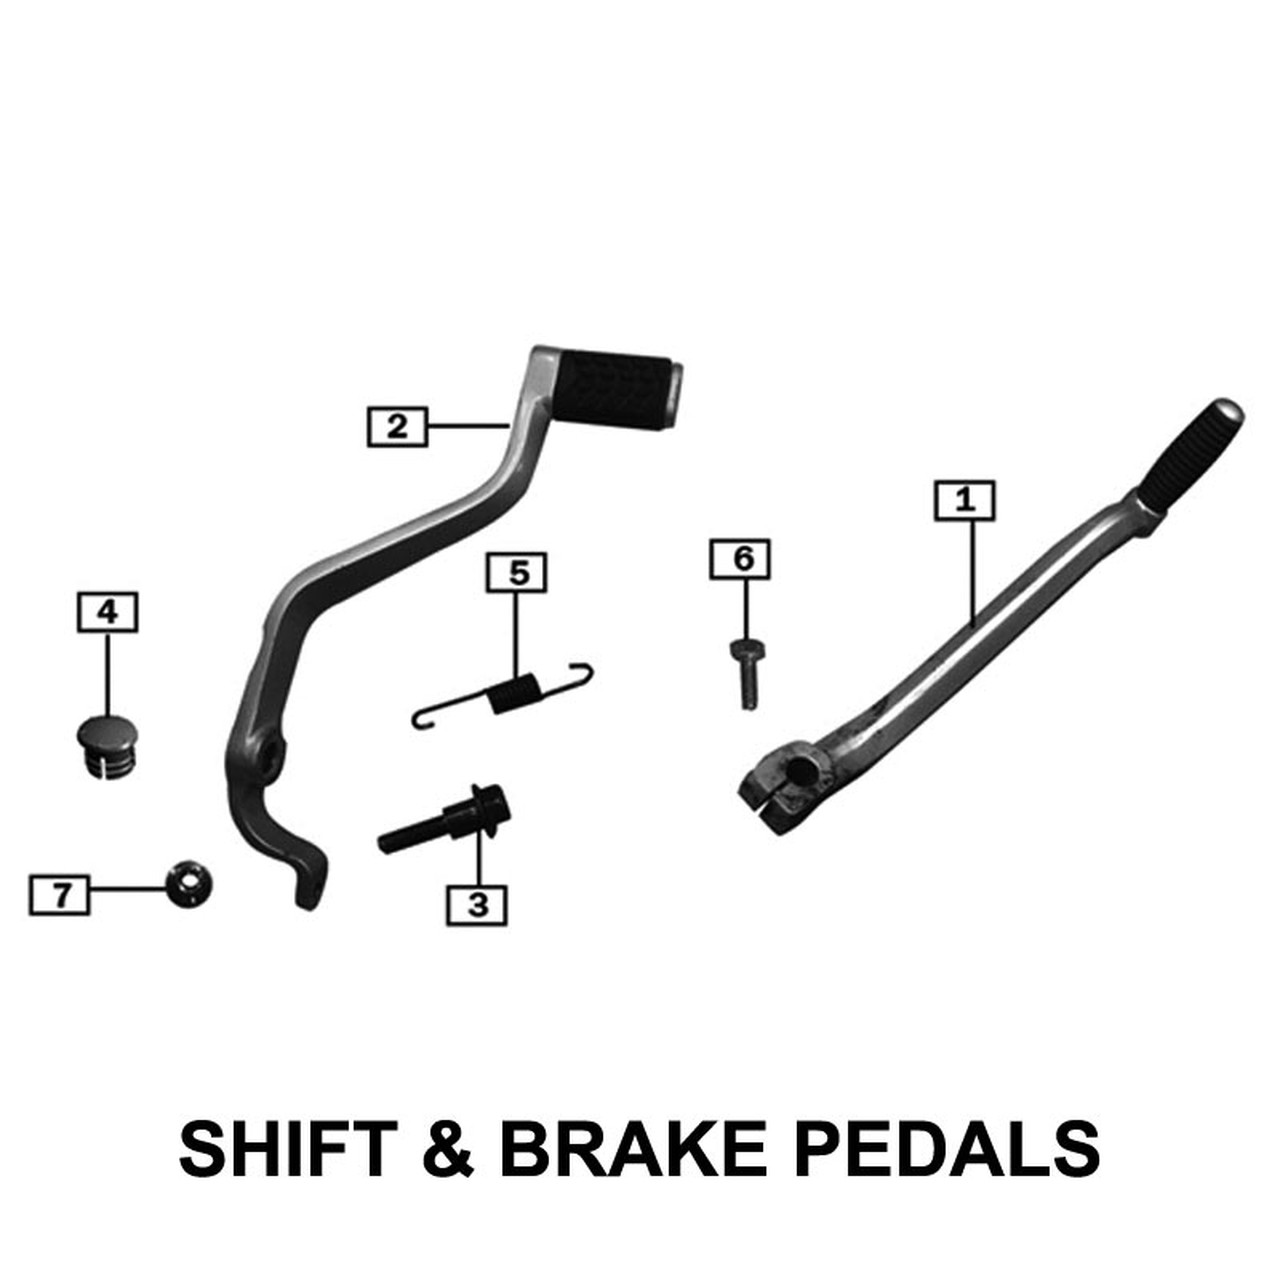 LEVERS, SHIFT AND BRAKE